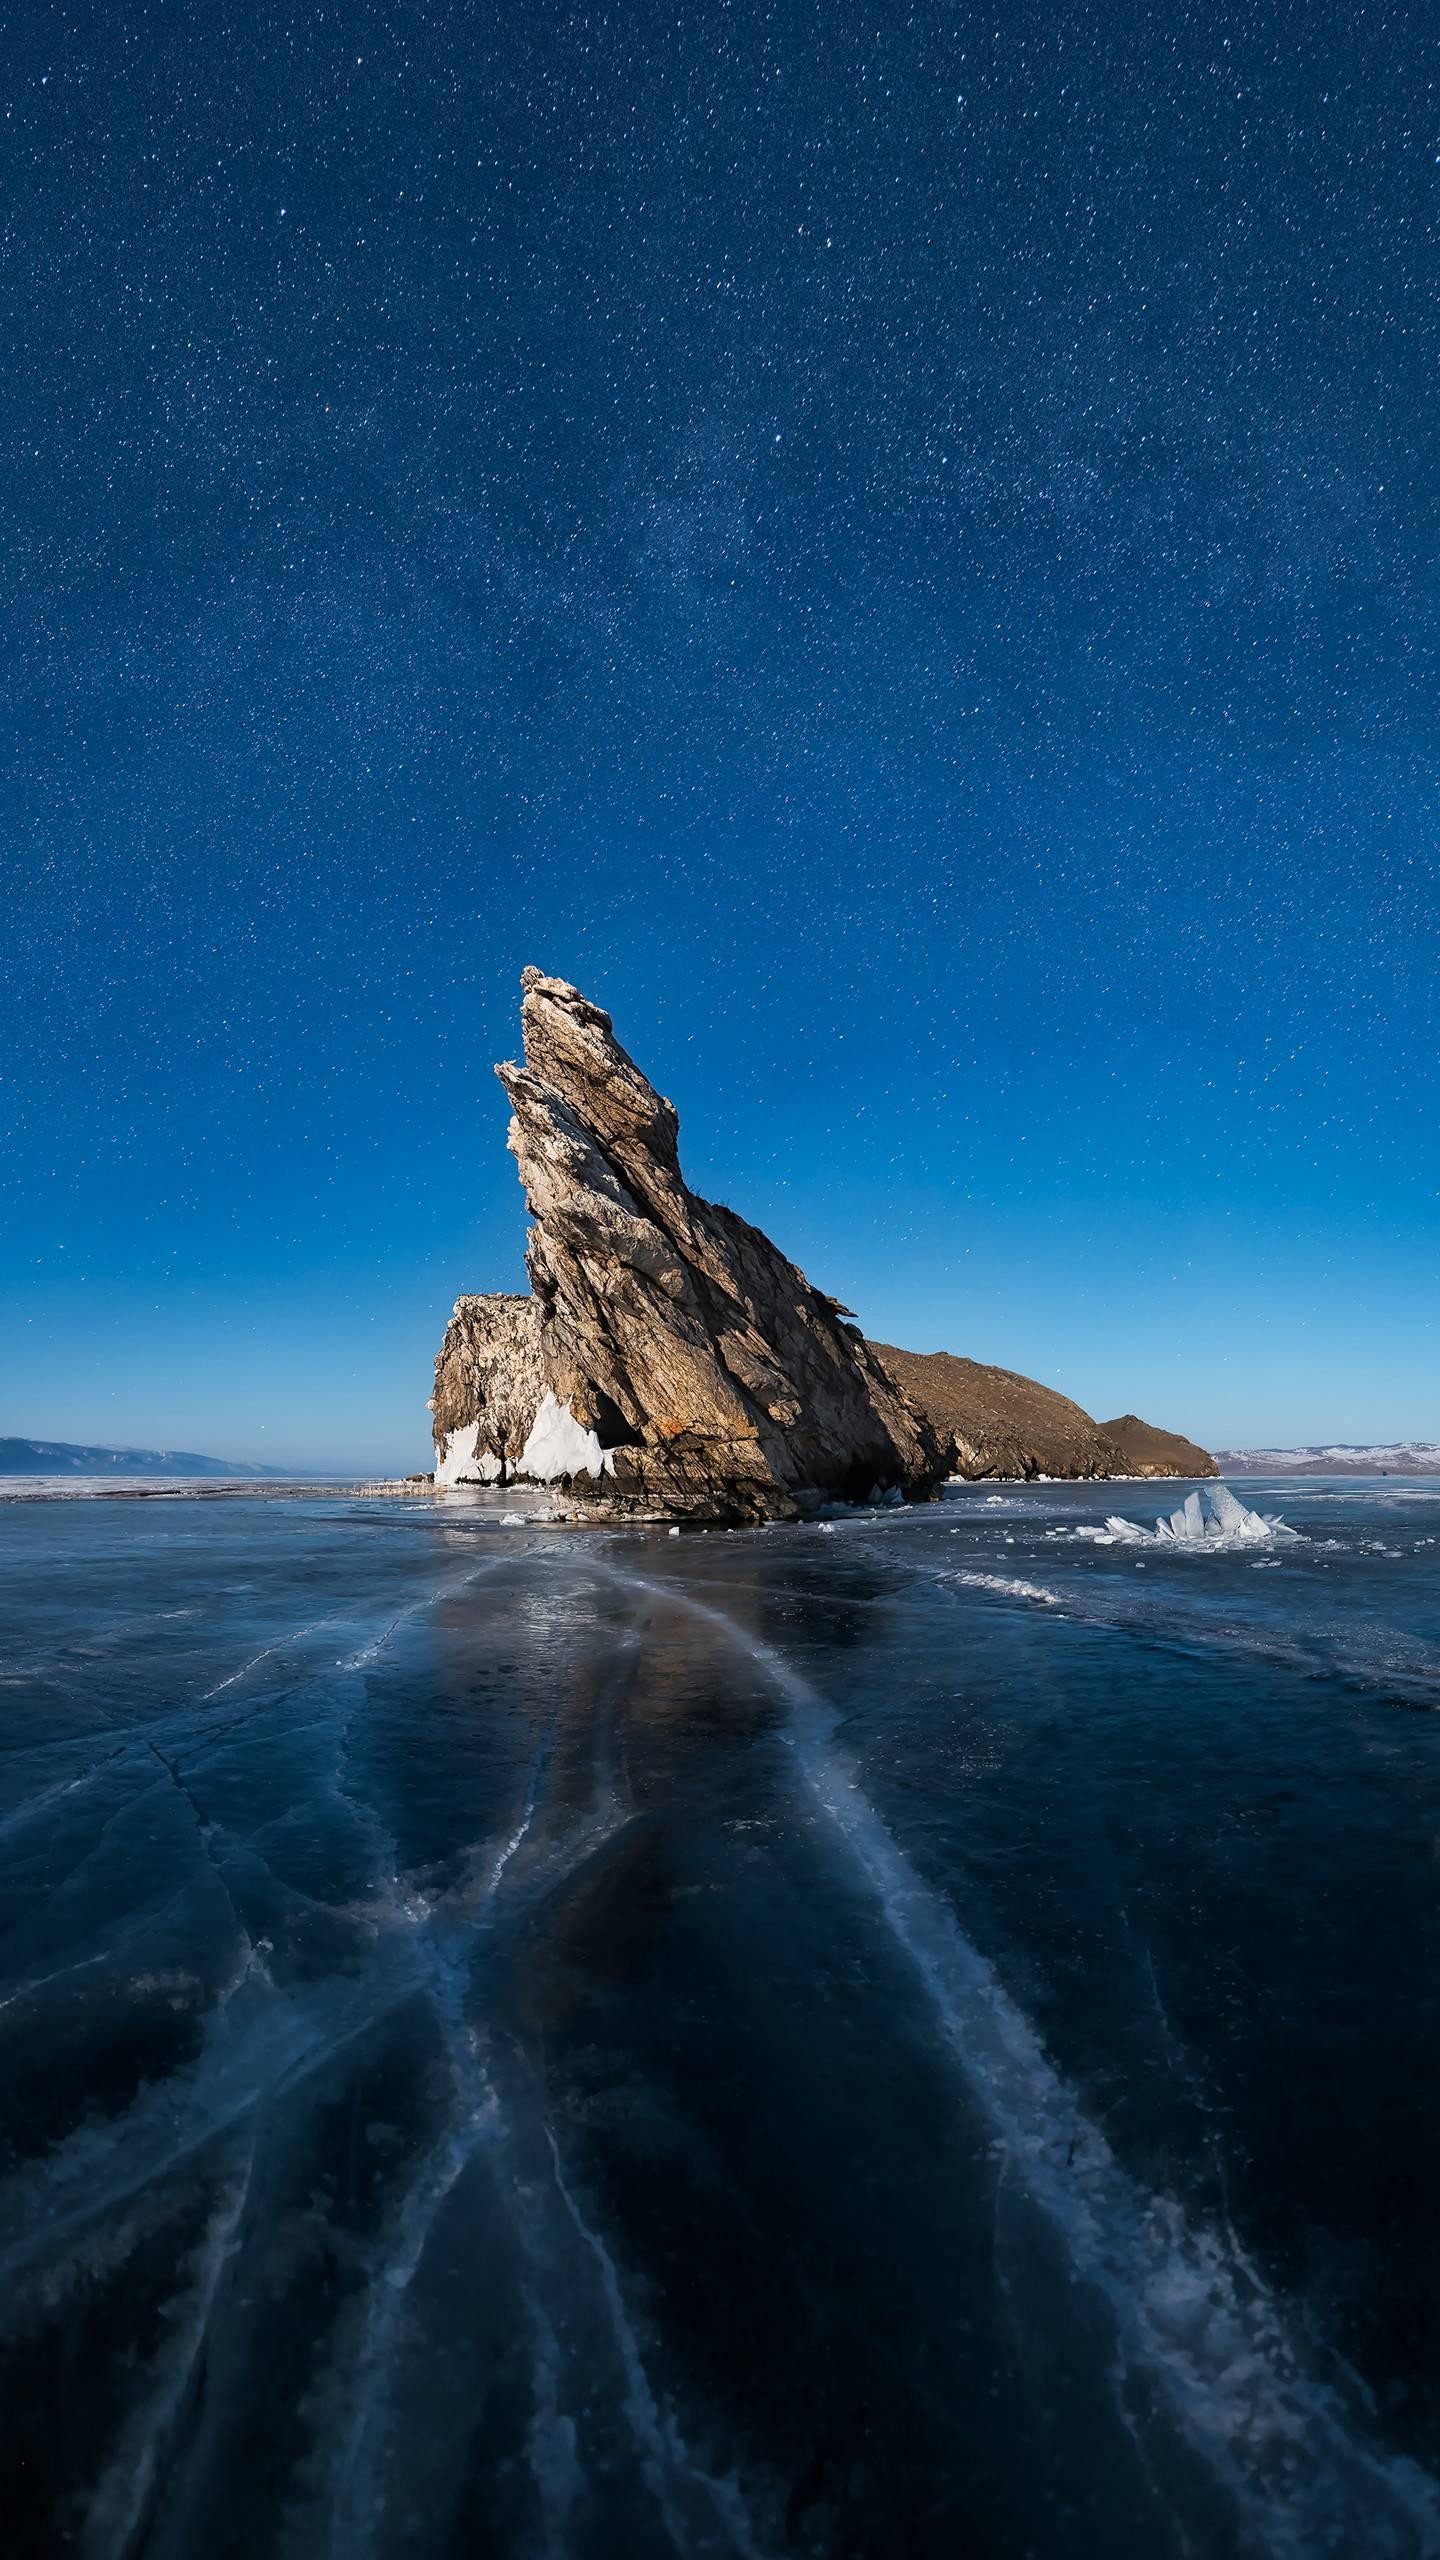 The unsolved mystery of Lake Baikal. Although it is a freshwater lake, it is home to marine animals in its lakes.